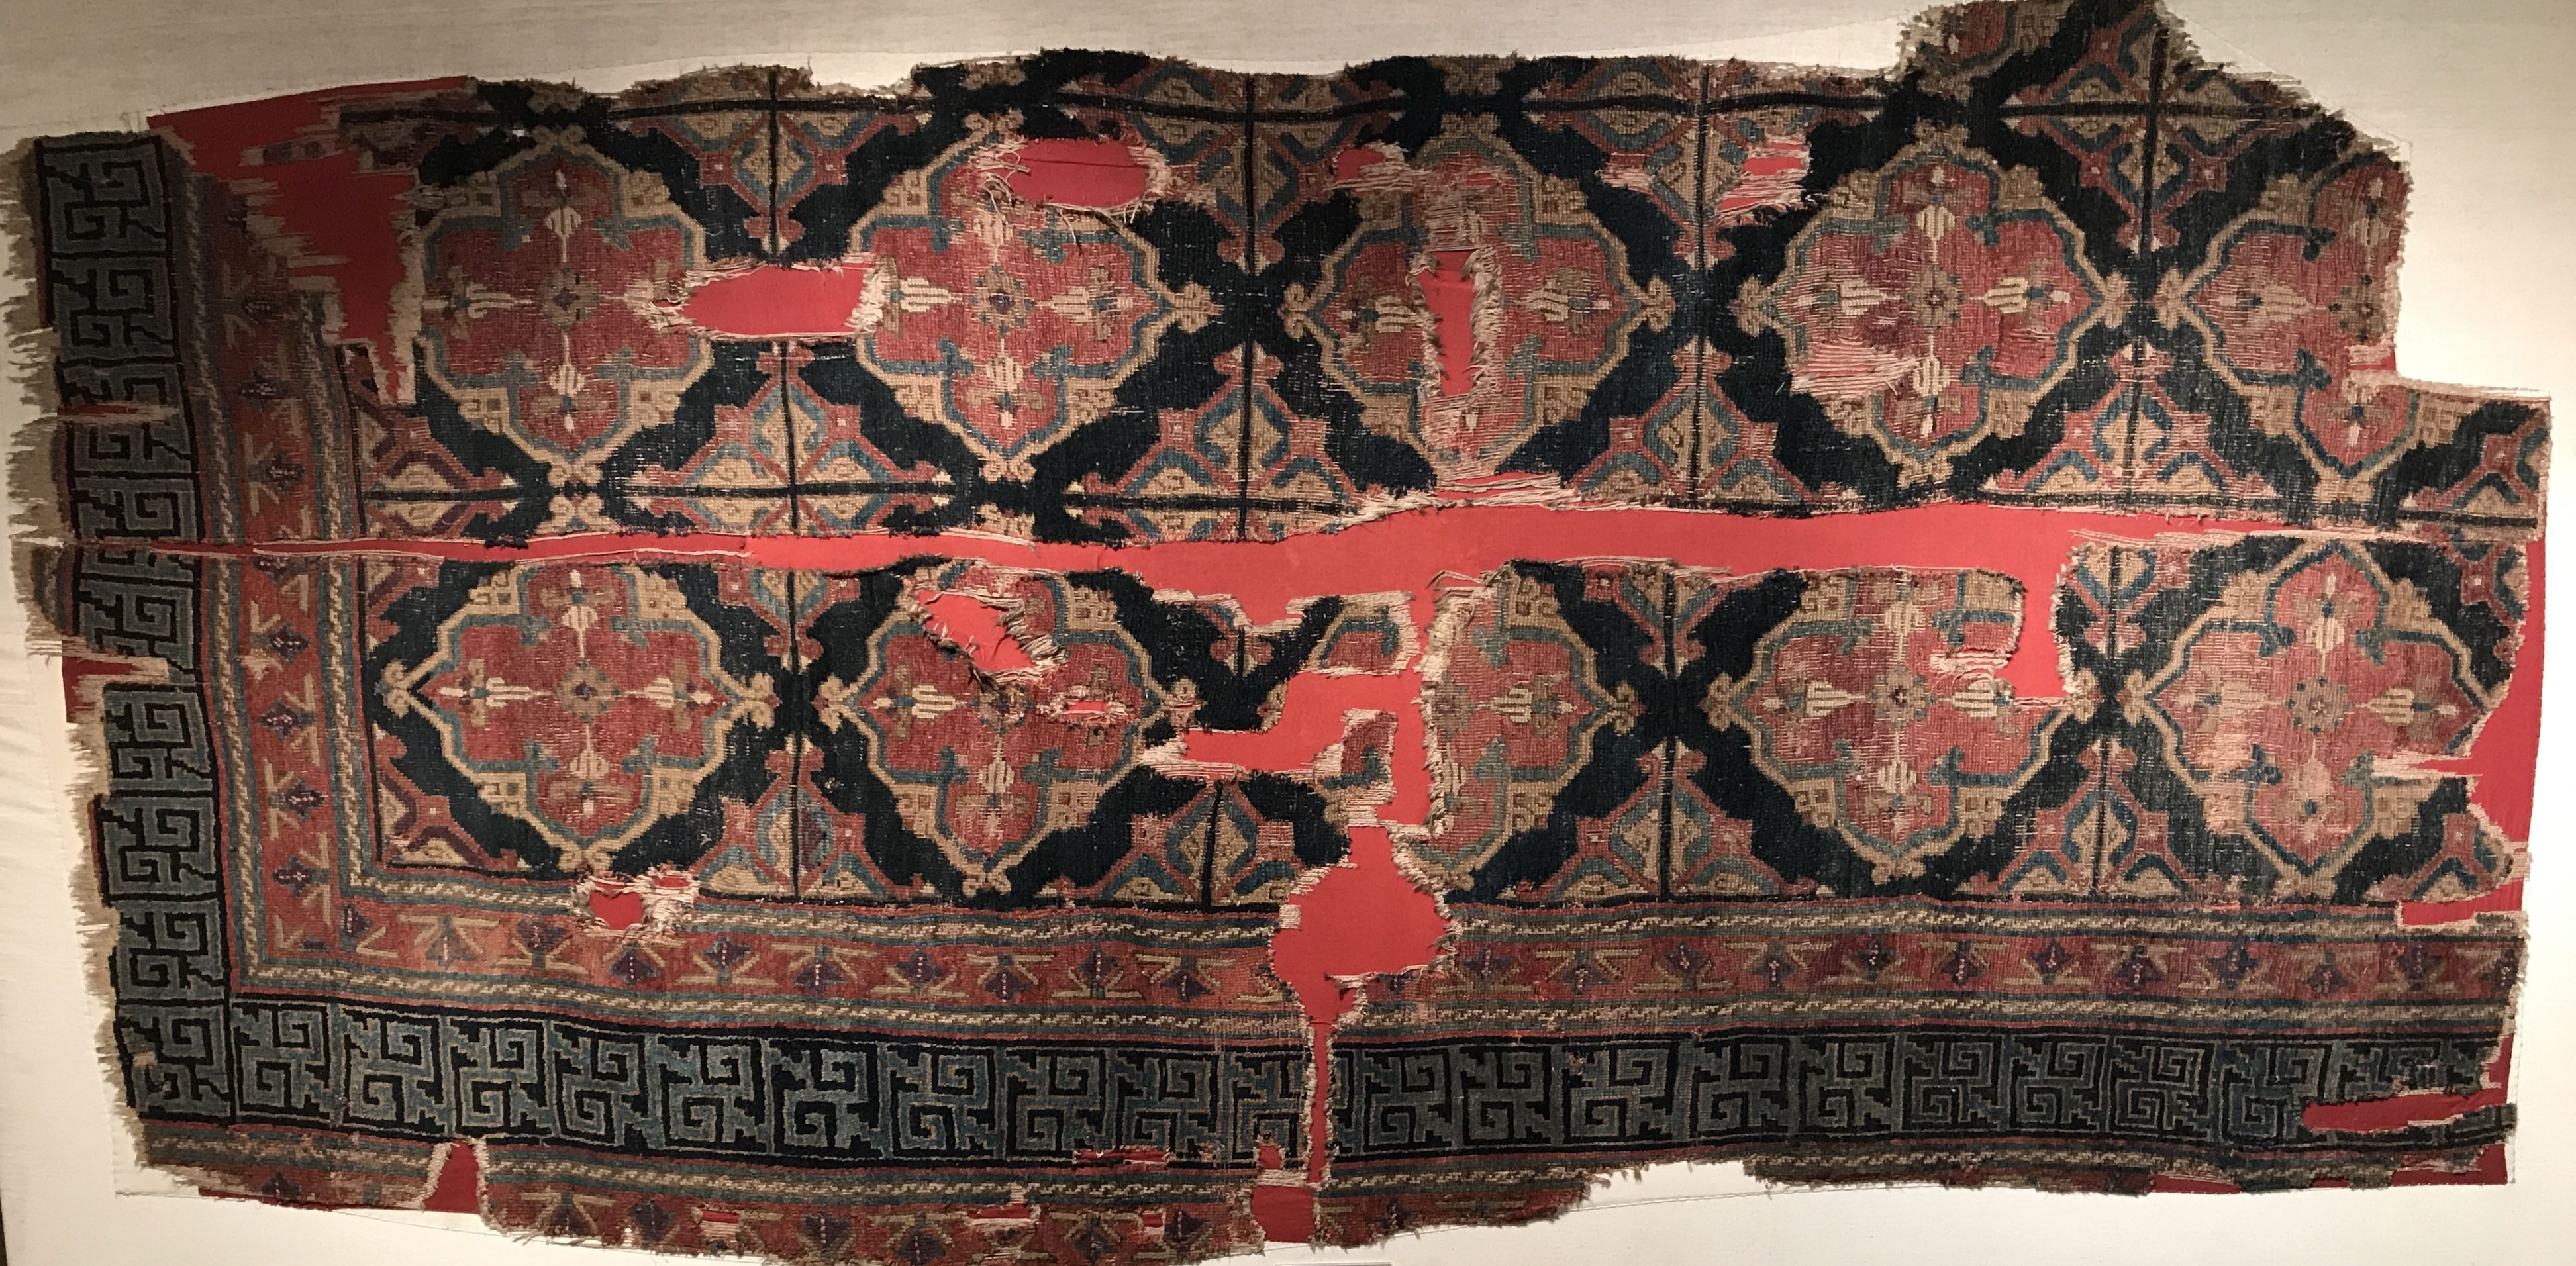 Selcuk Carpet Fragment From Central Turkey This Piece Is Now Located At The Etnografya Museum In Konya Turkey Age Circa 1300 Antique Rugs Persian Rug Rugs